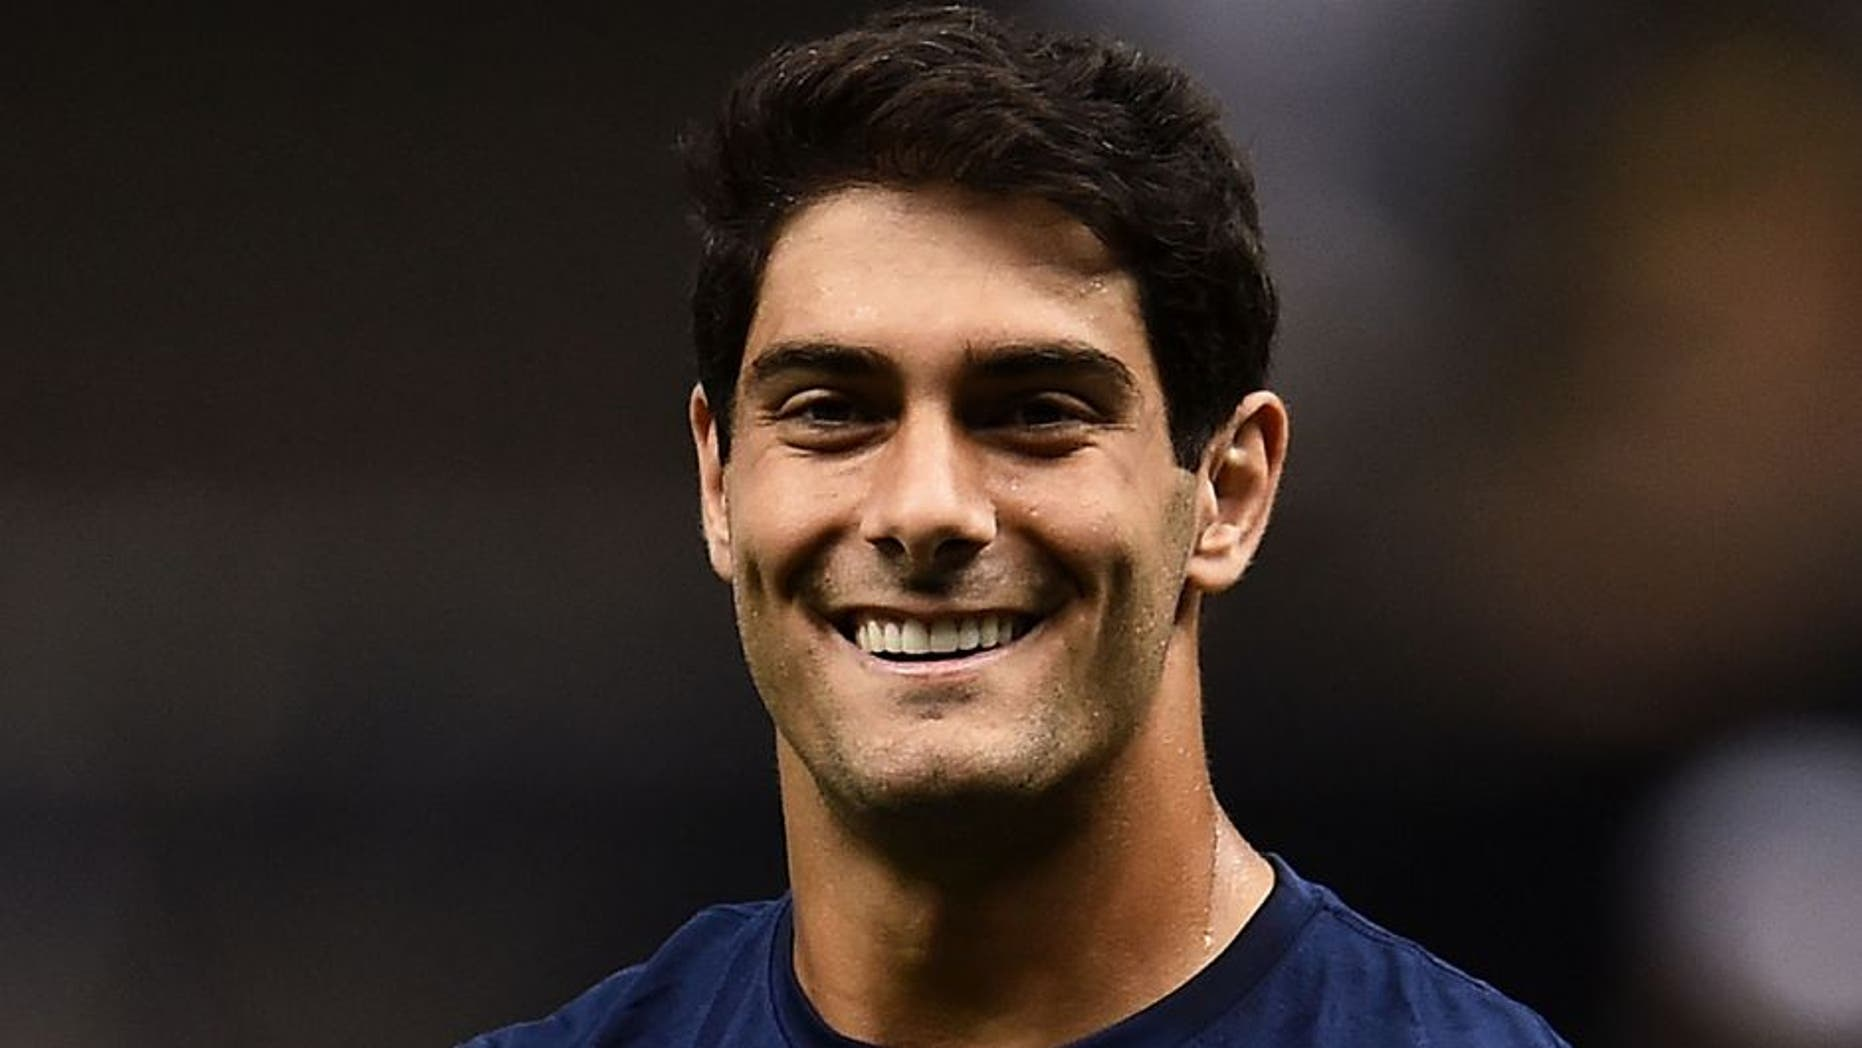 NEW ORLEANS, LA - AUGUST 22: Jimmy Garoppolo #10 of the New England Patriots participates in warmups prior to a preseason game against the New Orleans Saints at the Mercedes-Benz Superdome on August 22, 2015 in New Orleans, Louisiana. (Photo by Stacy Revere/Getty Images)